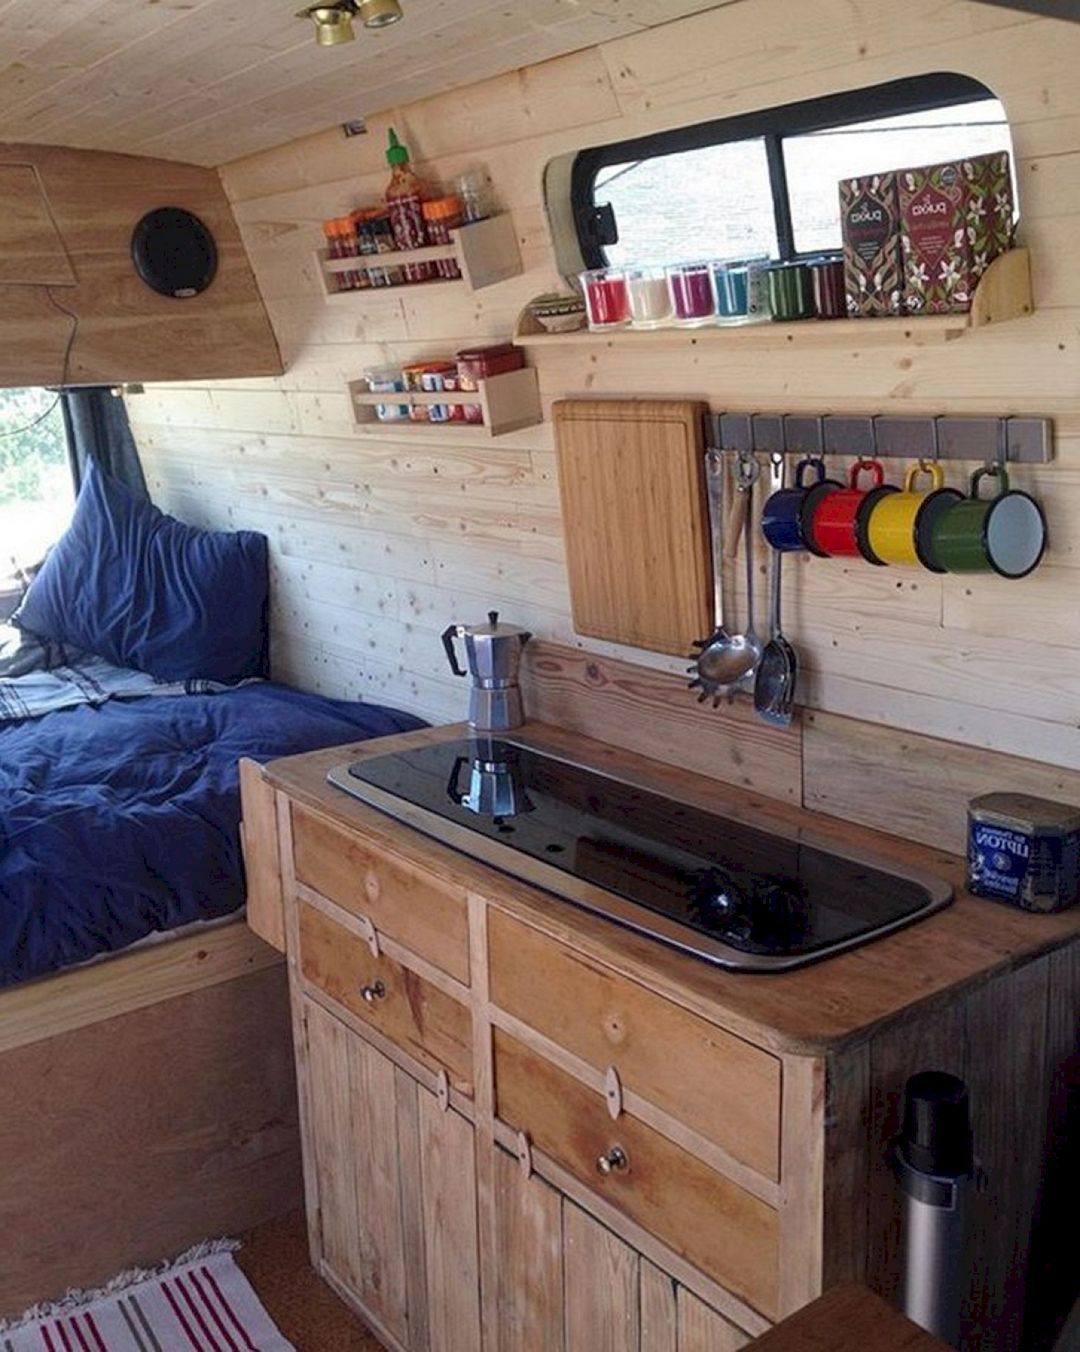 Marvelous Top 50+ RV Campers Interior Remodel Hacks Ideas https://freshouz.com/top-50-rv-campers-interior-remodel-hacks-ideas/